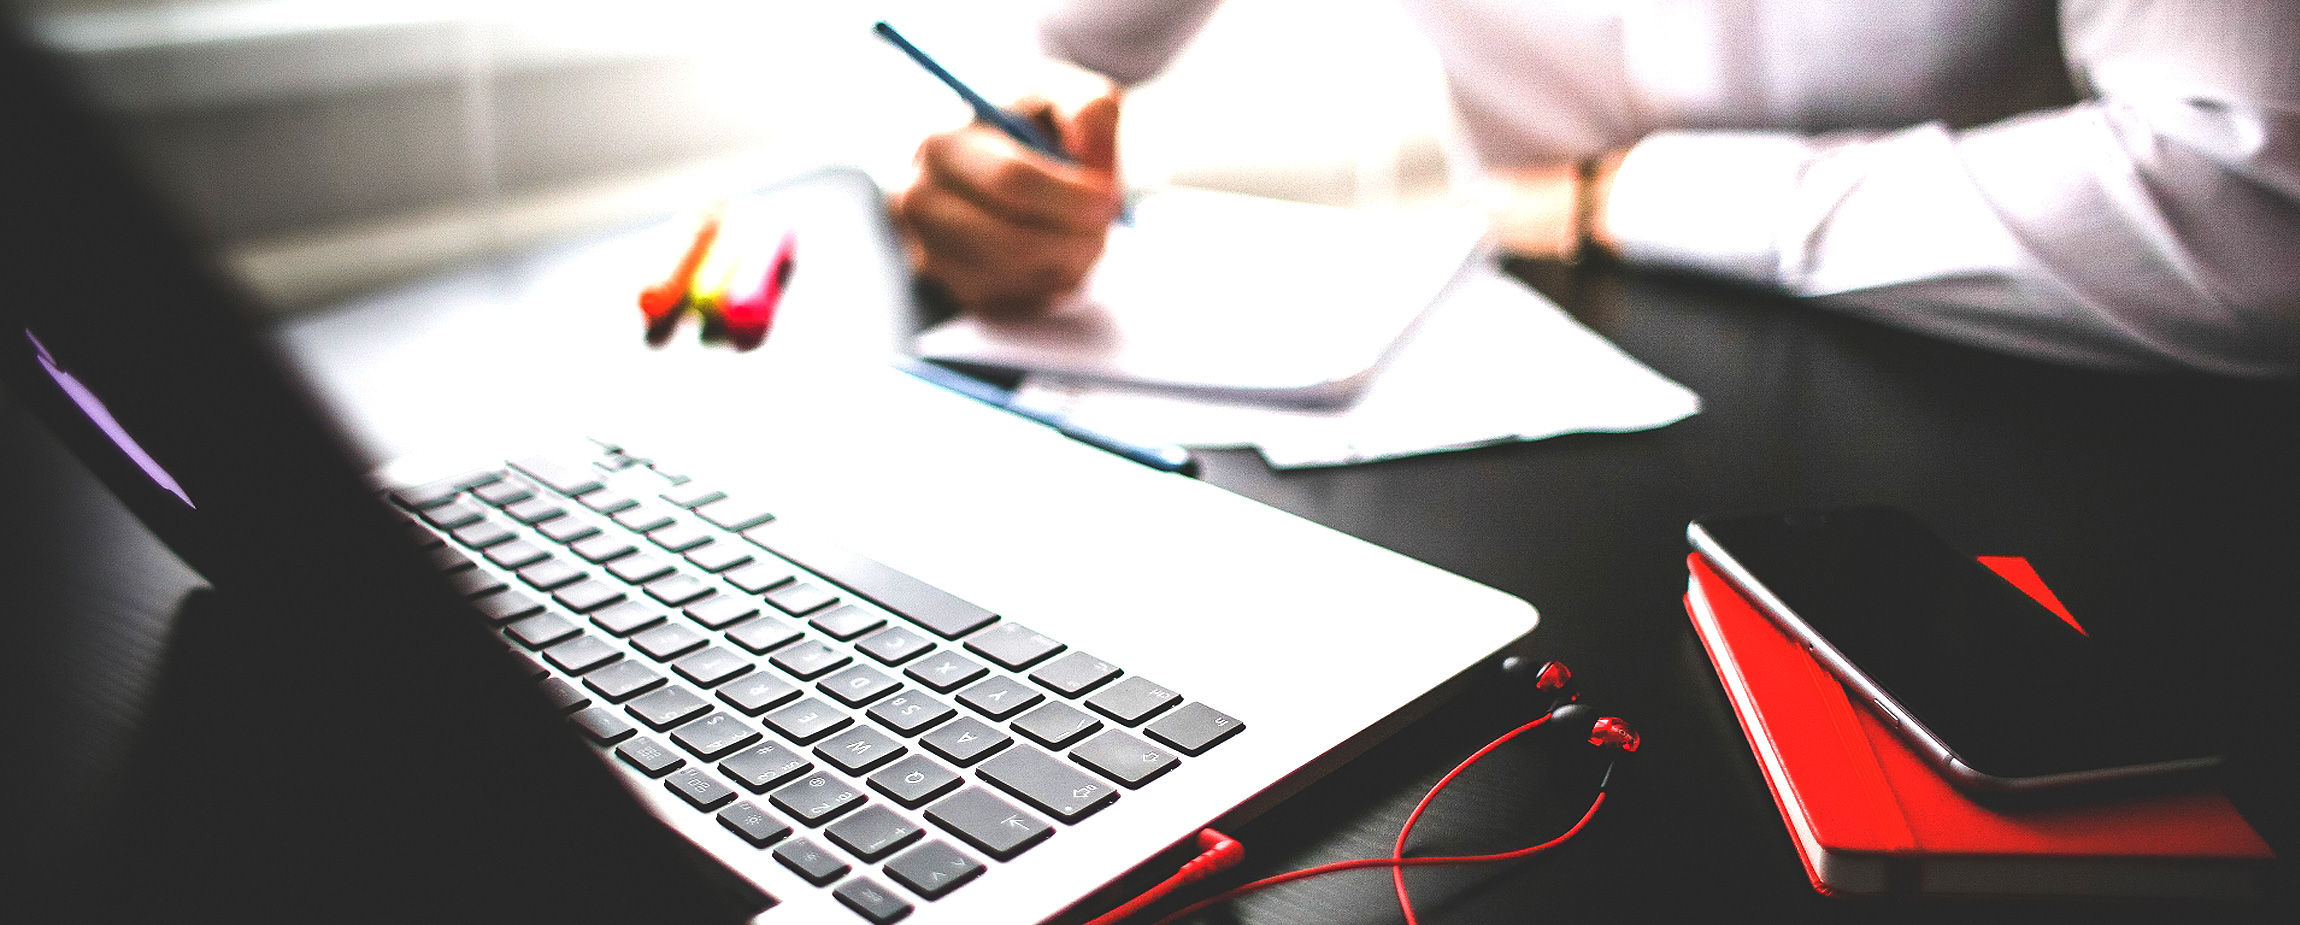 free online business writing courses Advertisement find over 150 courses, many from leading universities, that will deepen your professional education topics include finance, technology, entrepreneurship and much more.